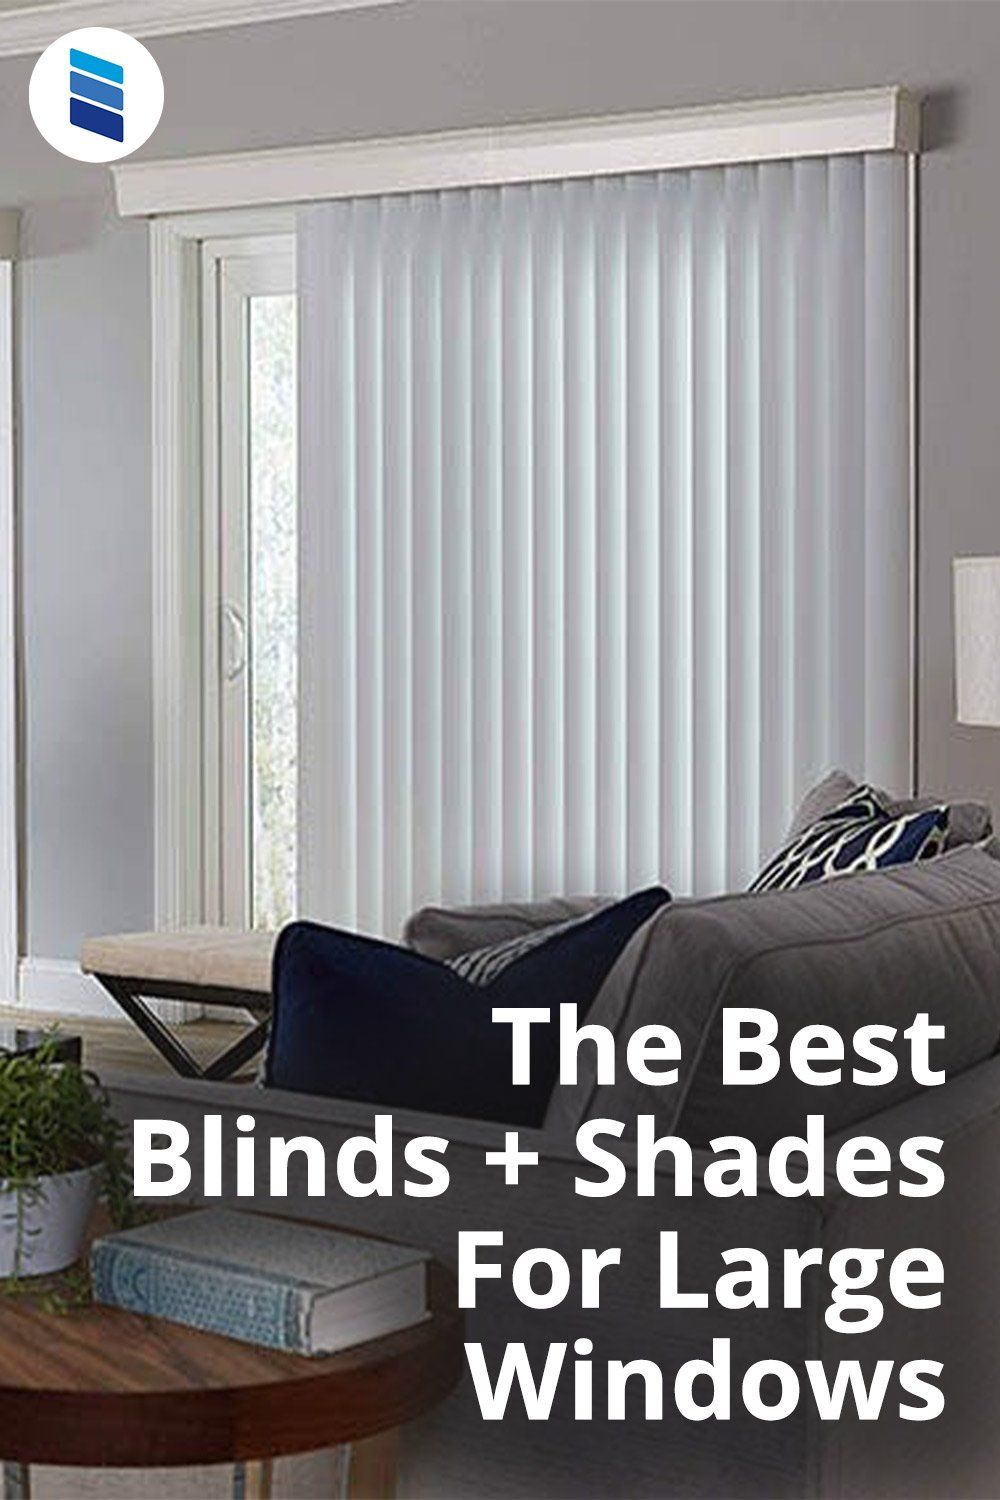 The Best Window Treatments For Large Windows Blinds Com In 2021 Large Window Coverings Large Windows Large Window Treatments